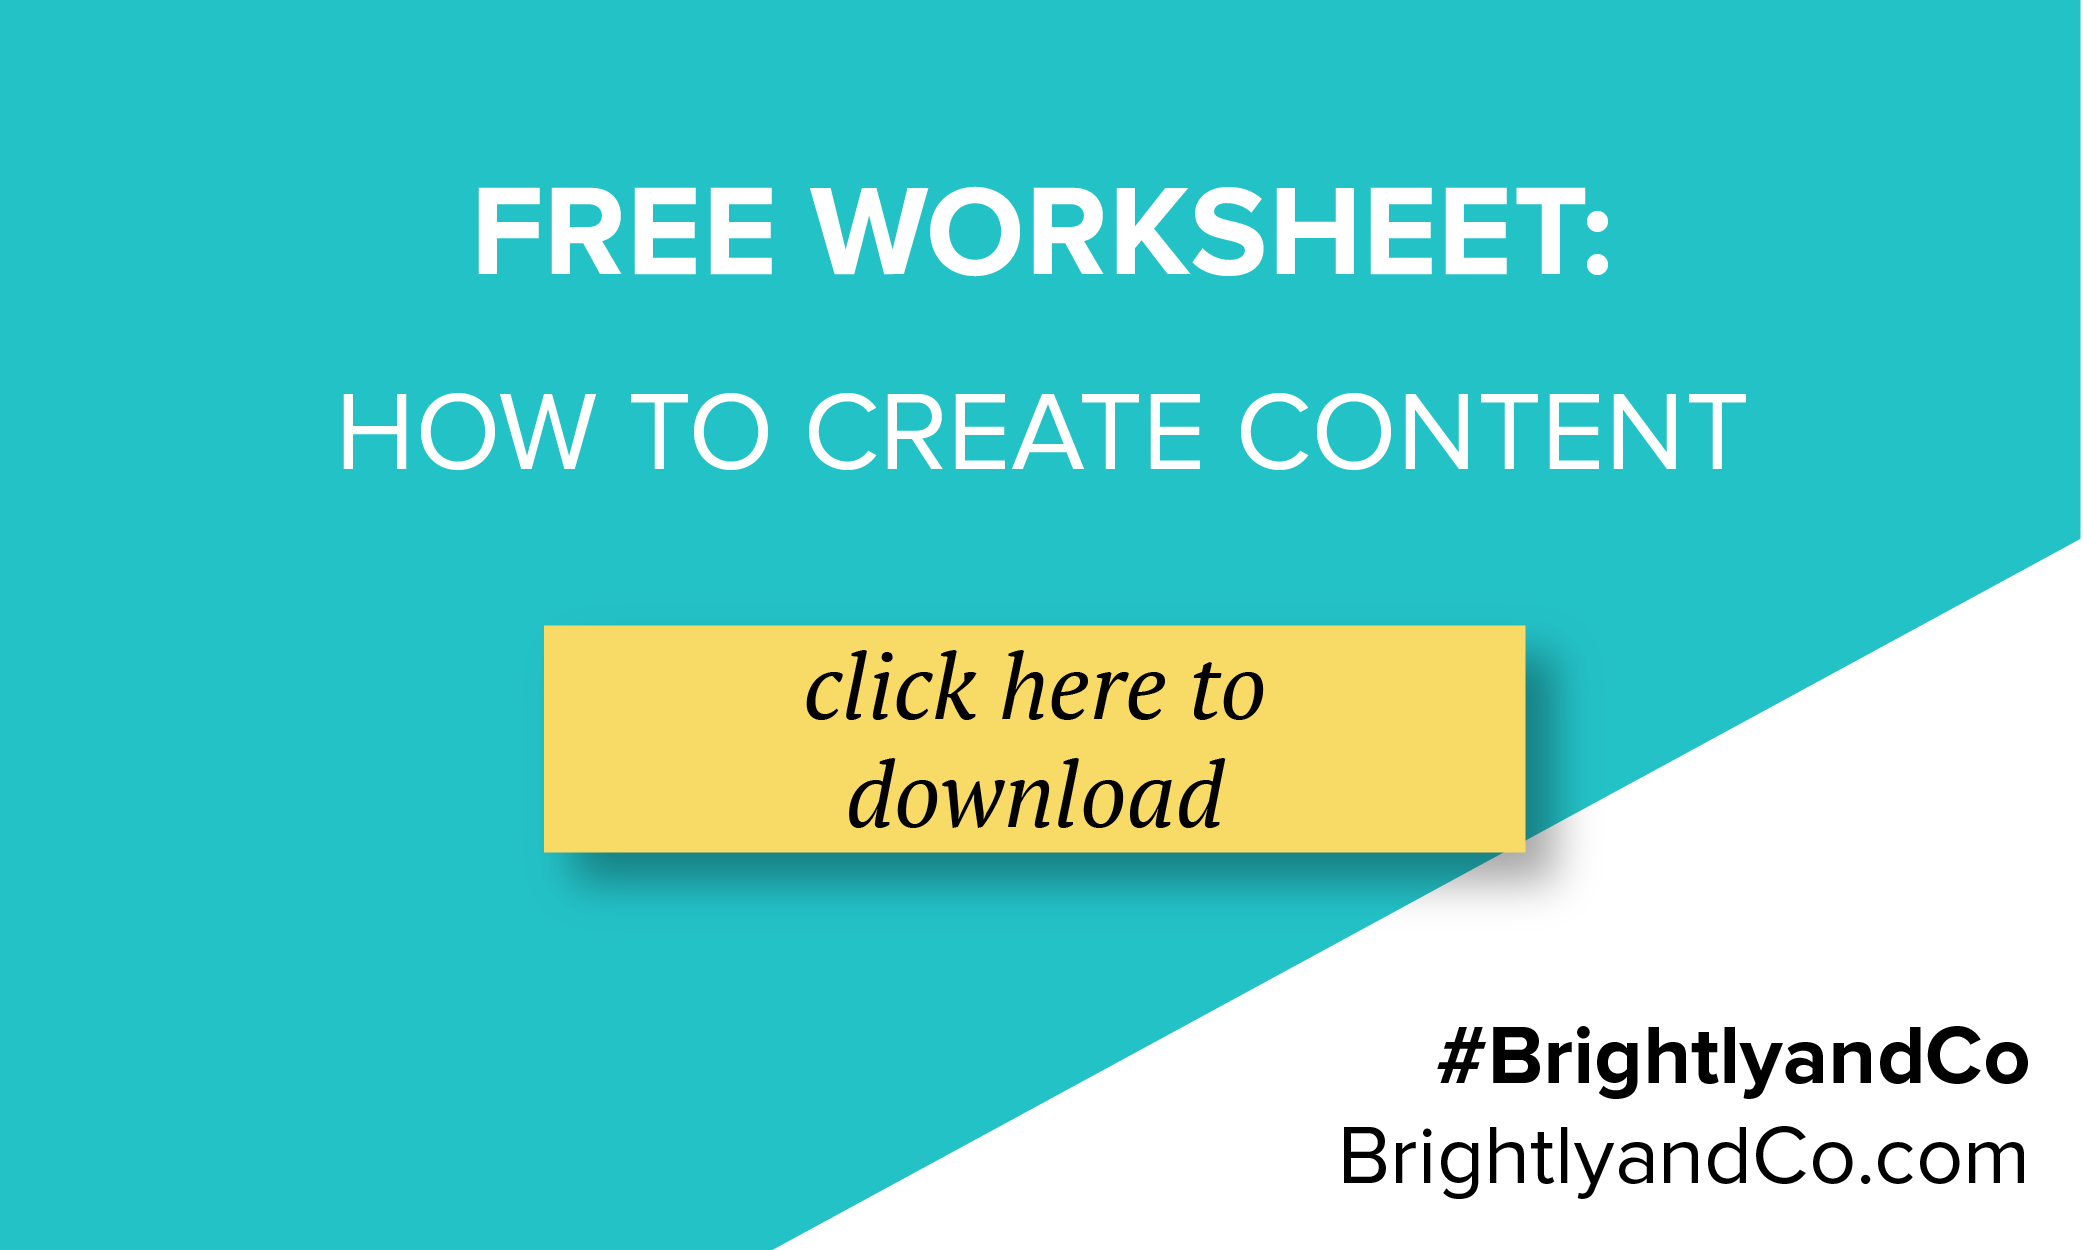 How to create content - Free worksheet - created by: Brightly & Co.